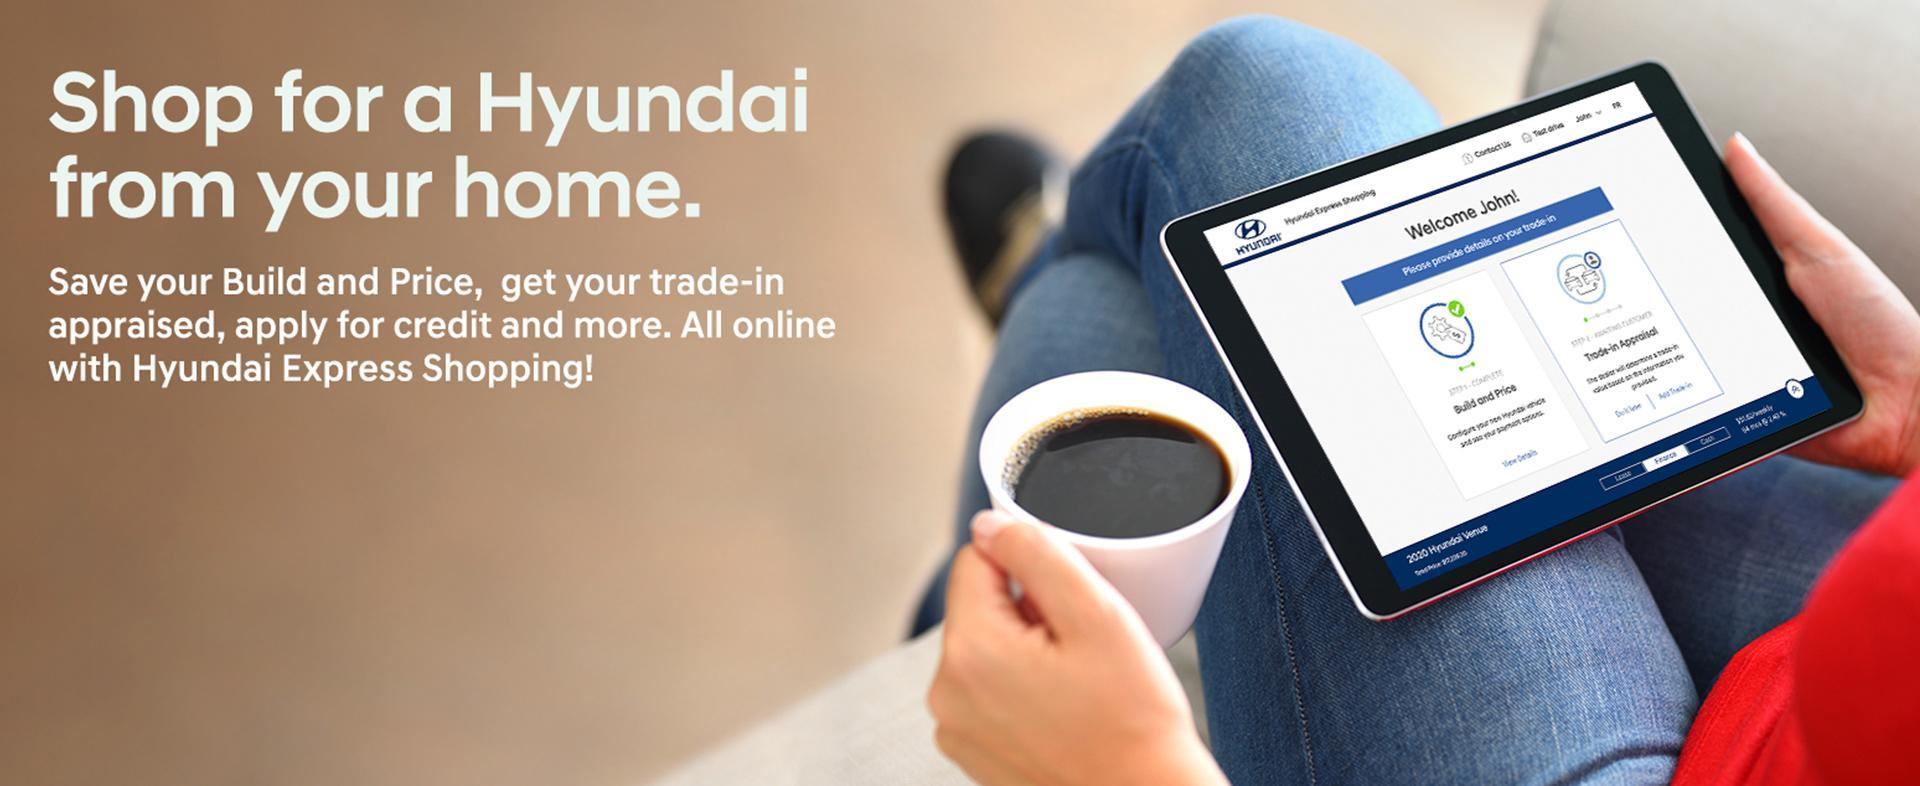 Shop From Home with Hyundai Express Shopping | Campbell River Hyundai